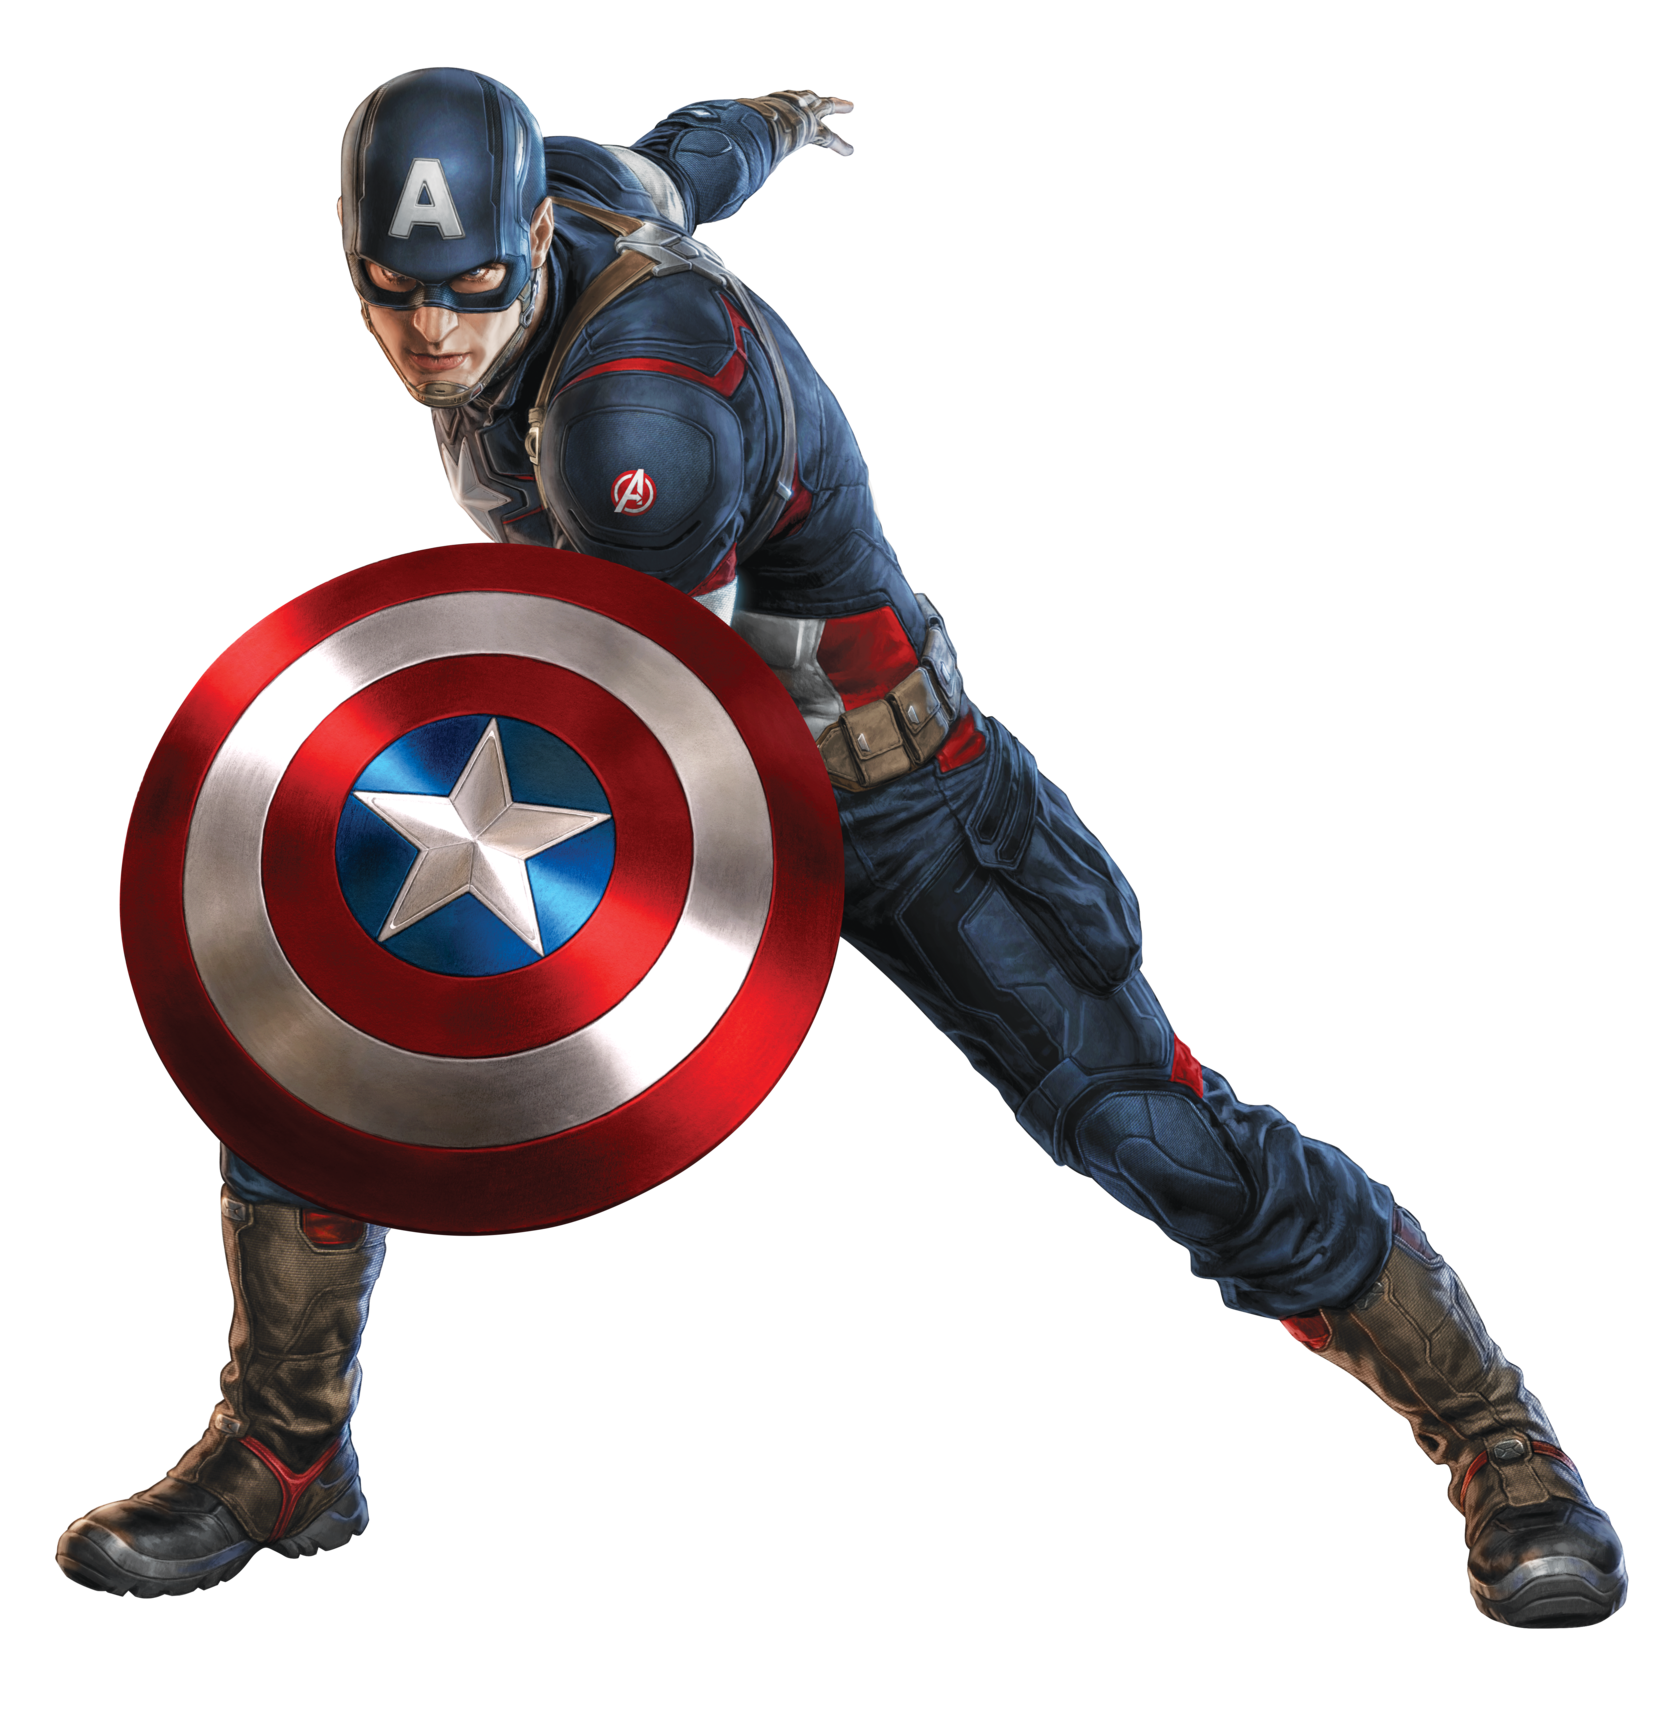 Captain America Fictional Superhero 320.29 Kb